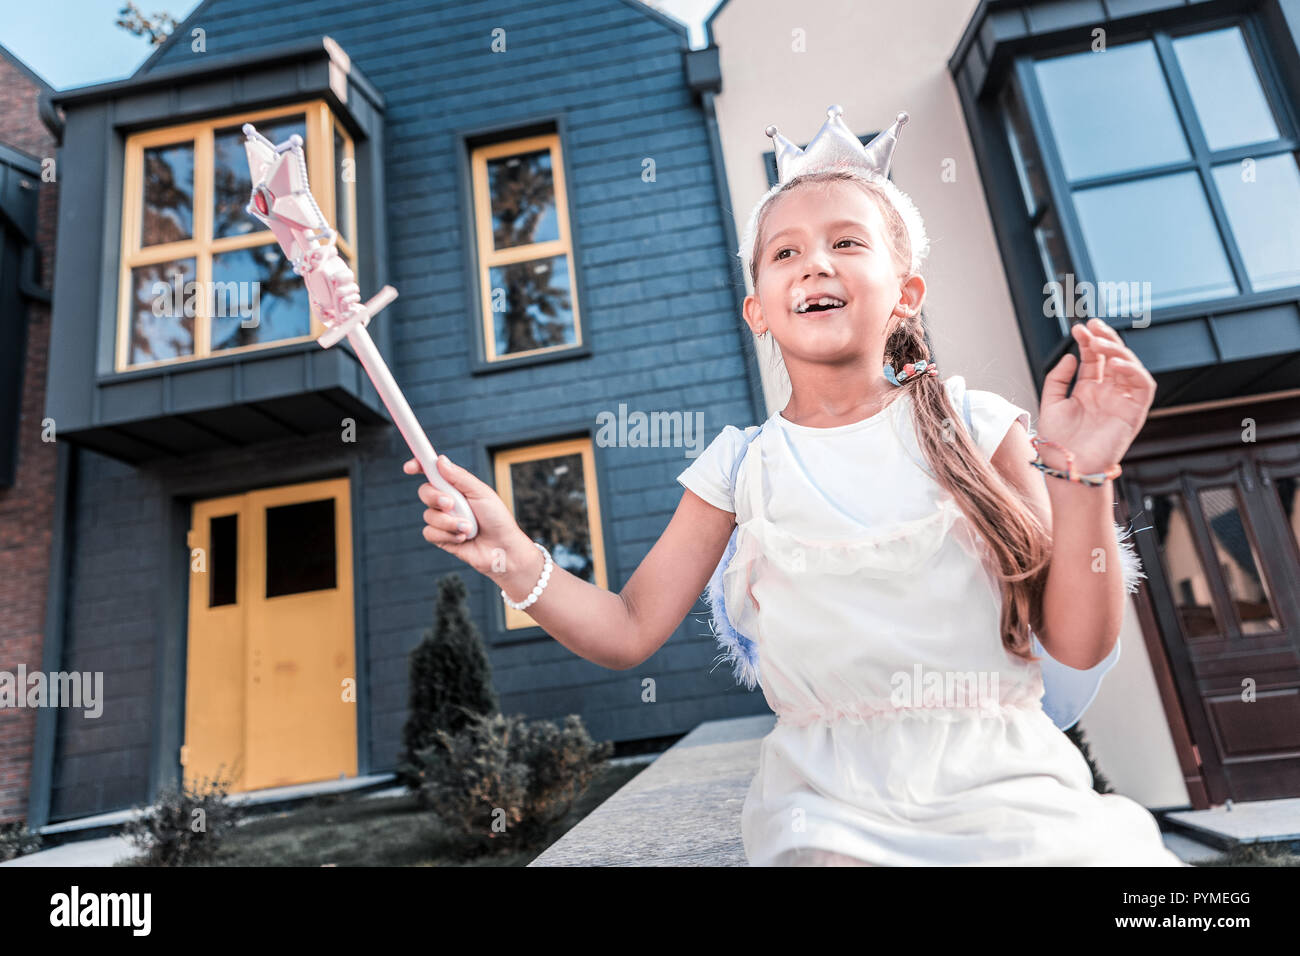 Beaming dark-haired girl with magic wand walking near her house - Stock Image